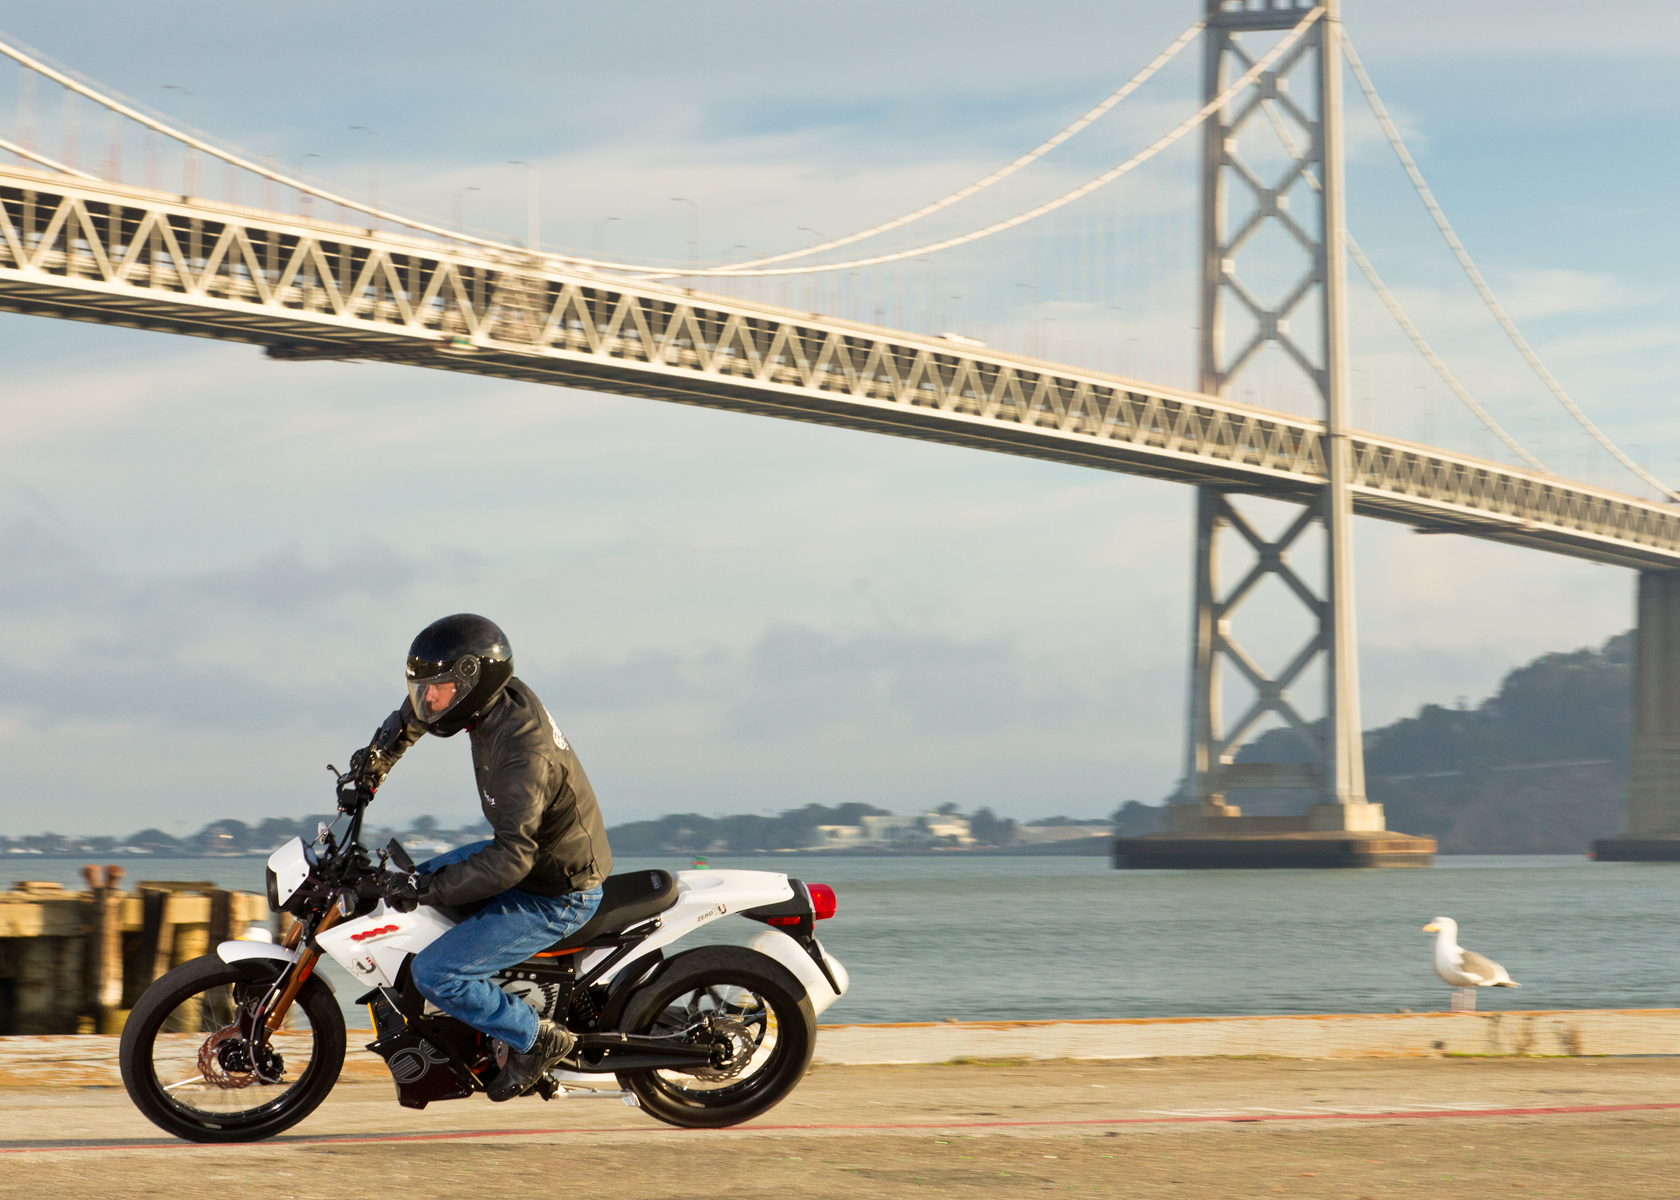 2012 Zero XU Electric Motorcycle: Cruising, Lean Left